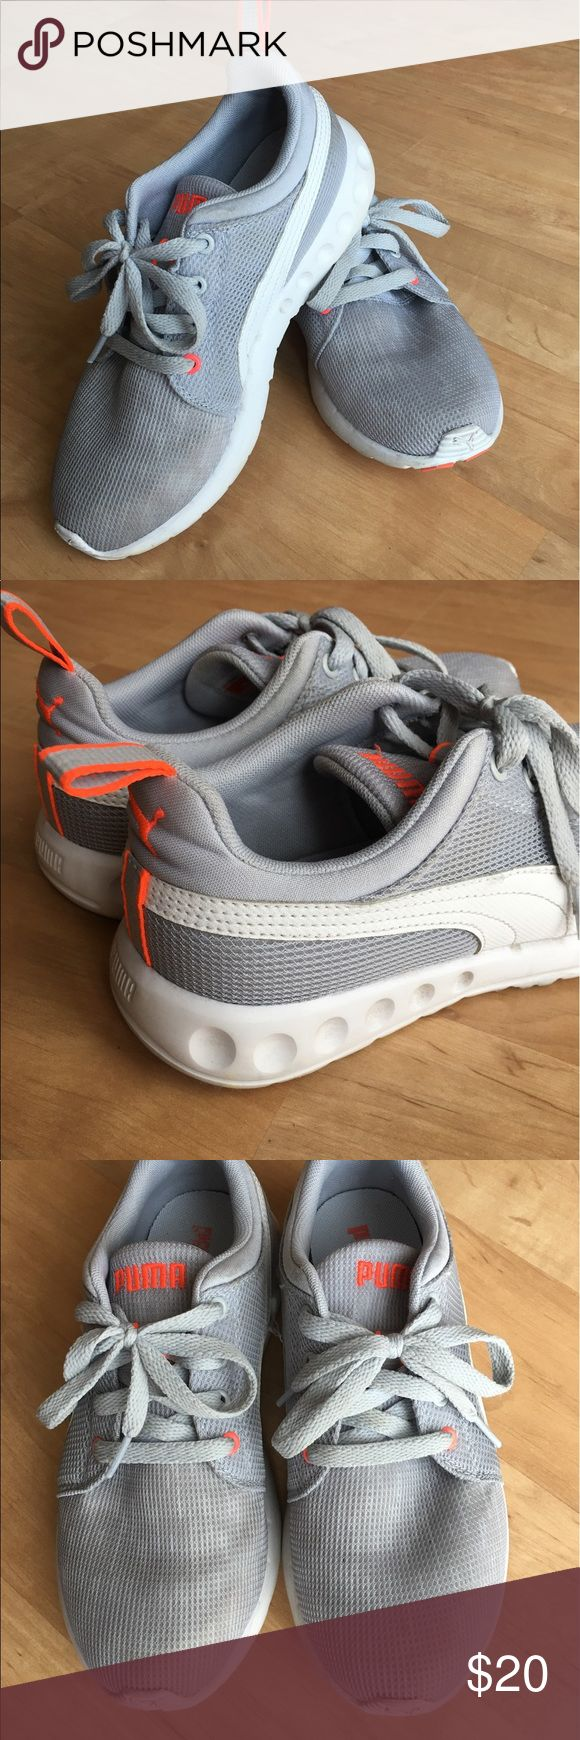 Women's Puma Tennis Shoes Gently worn women's athletic shoes. A few scuffs from walking in and out of the gym.  Just no longer reach for these anymore. Puma Shoes Athletic Shoes